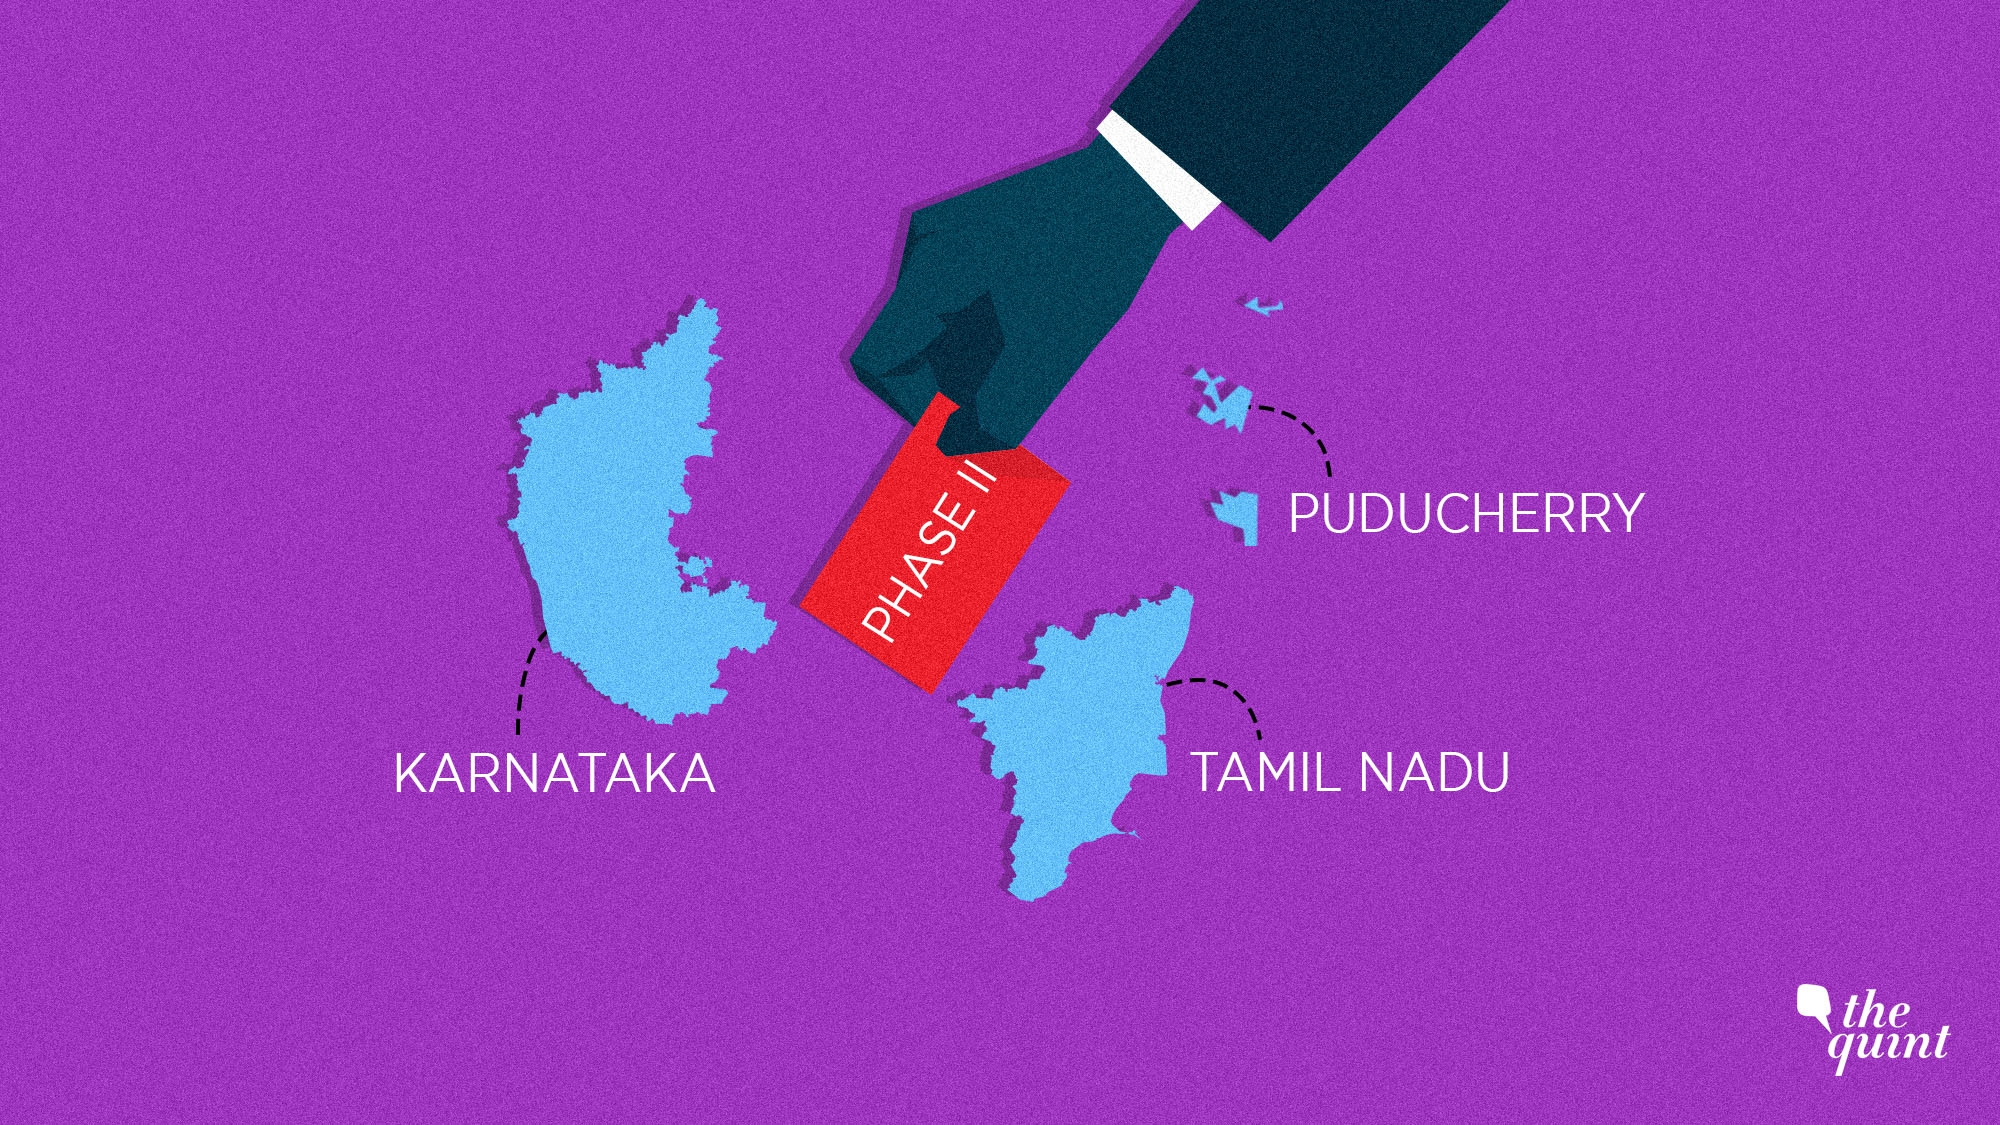 QChennai: Temple Stampede Kills 7; Repolling Advised in 10 Booths